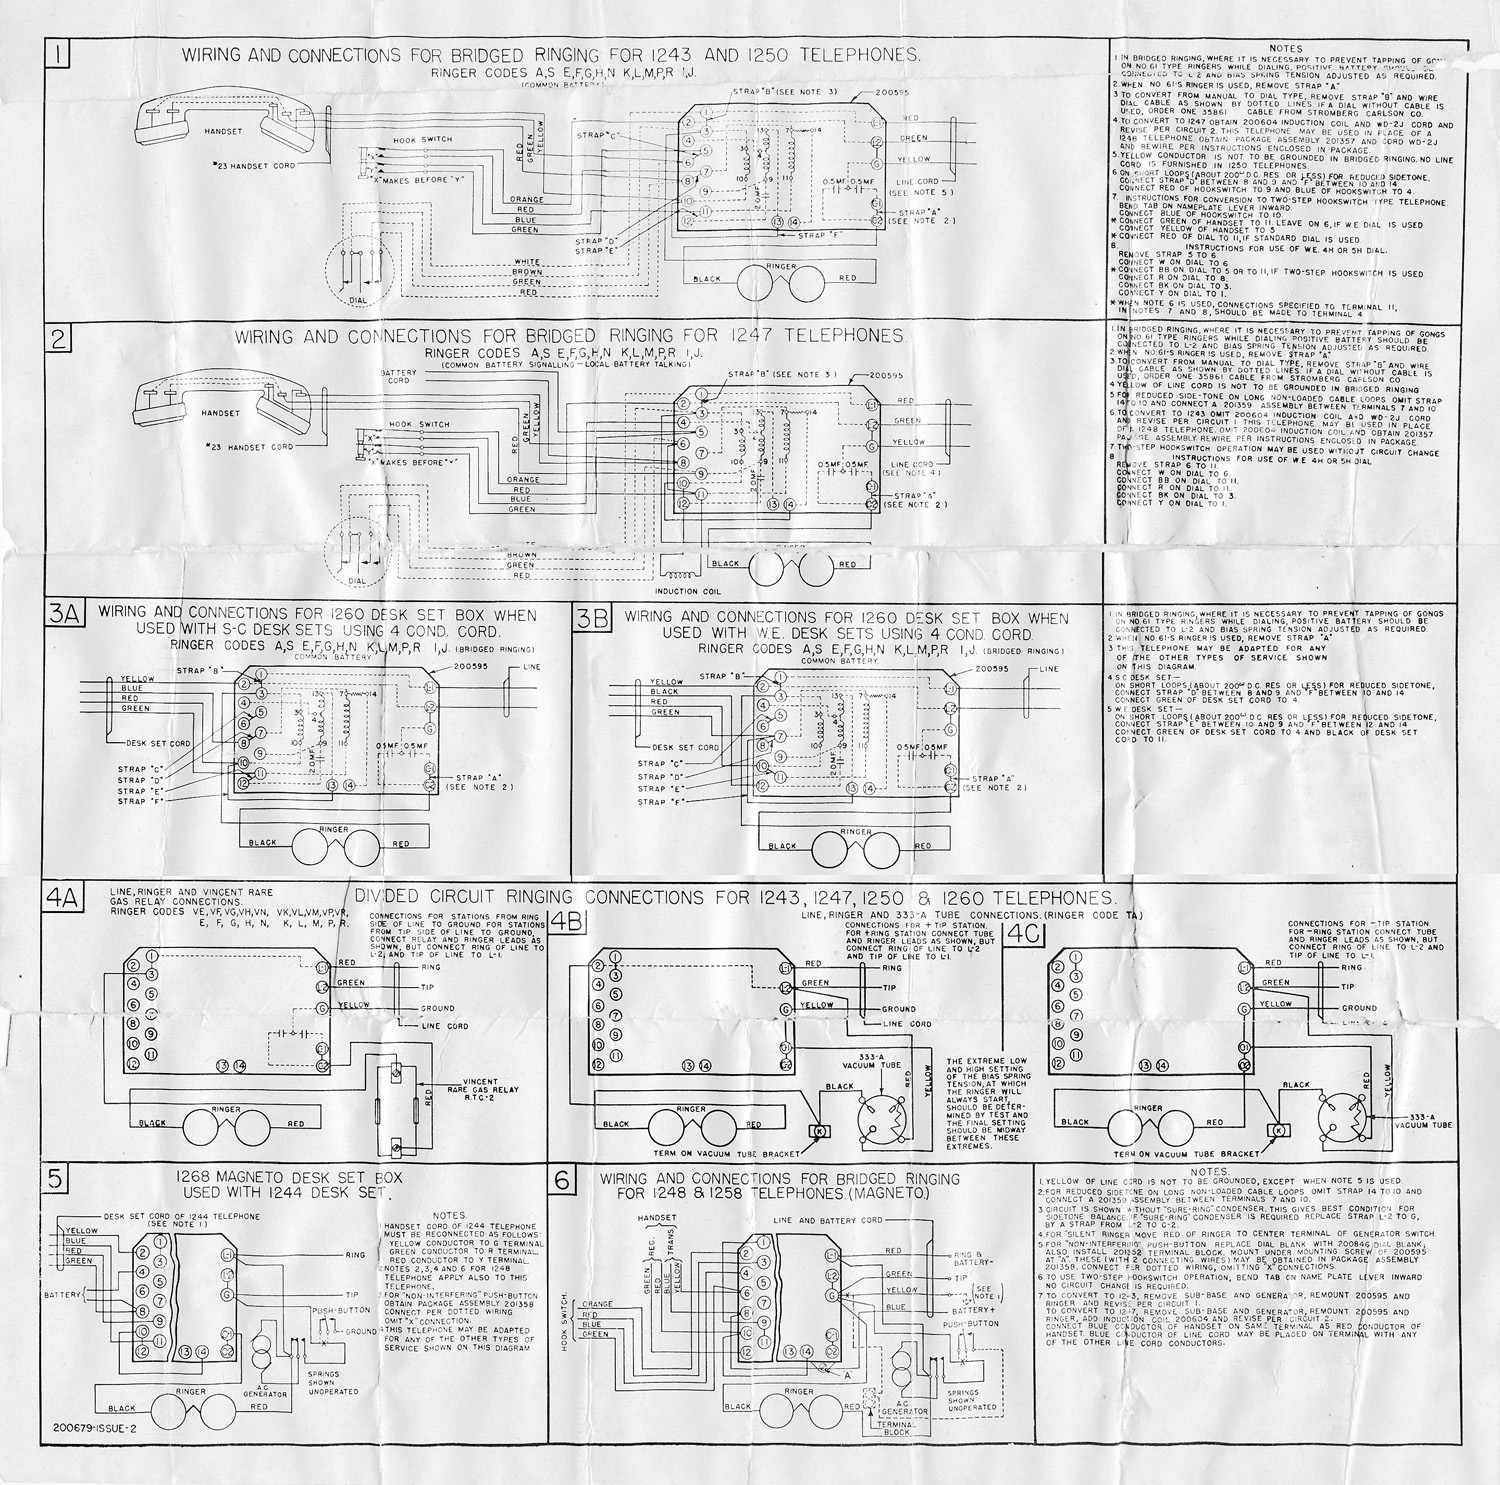 rotary phone parts diagram 2006 dodge charger fuse schematics old telephone line residential get free image